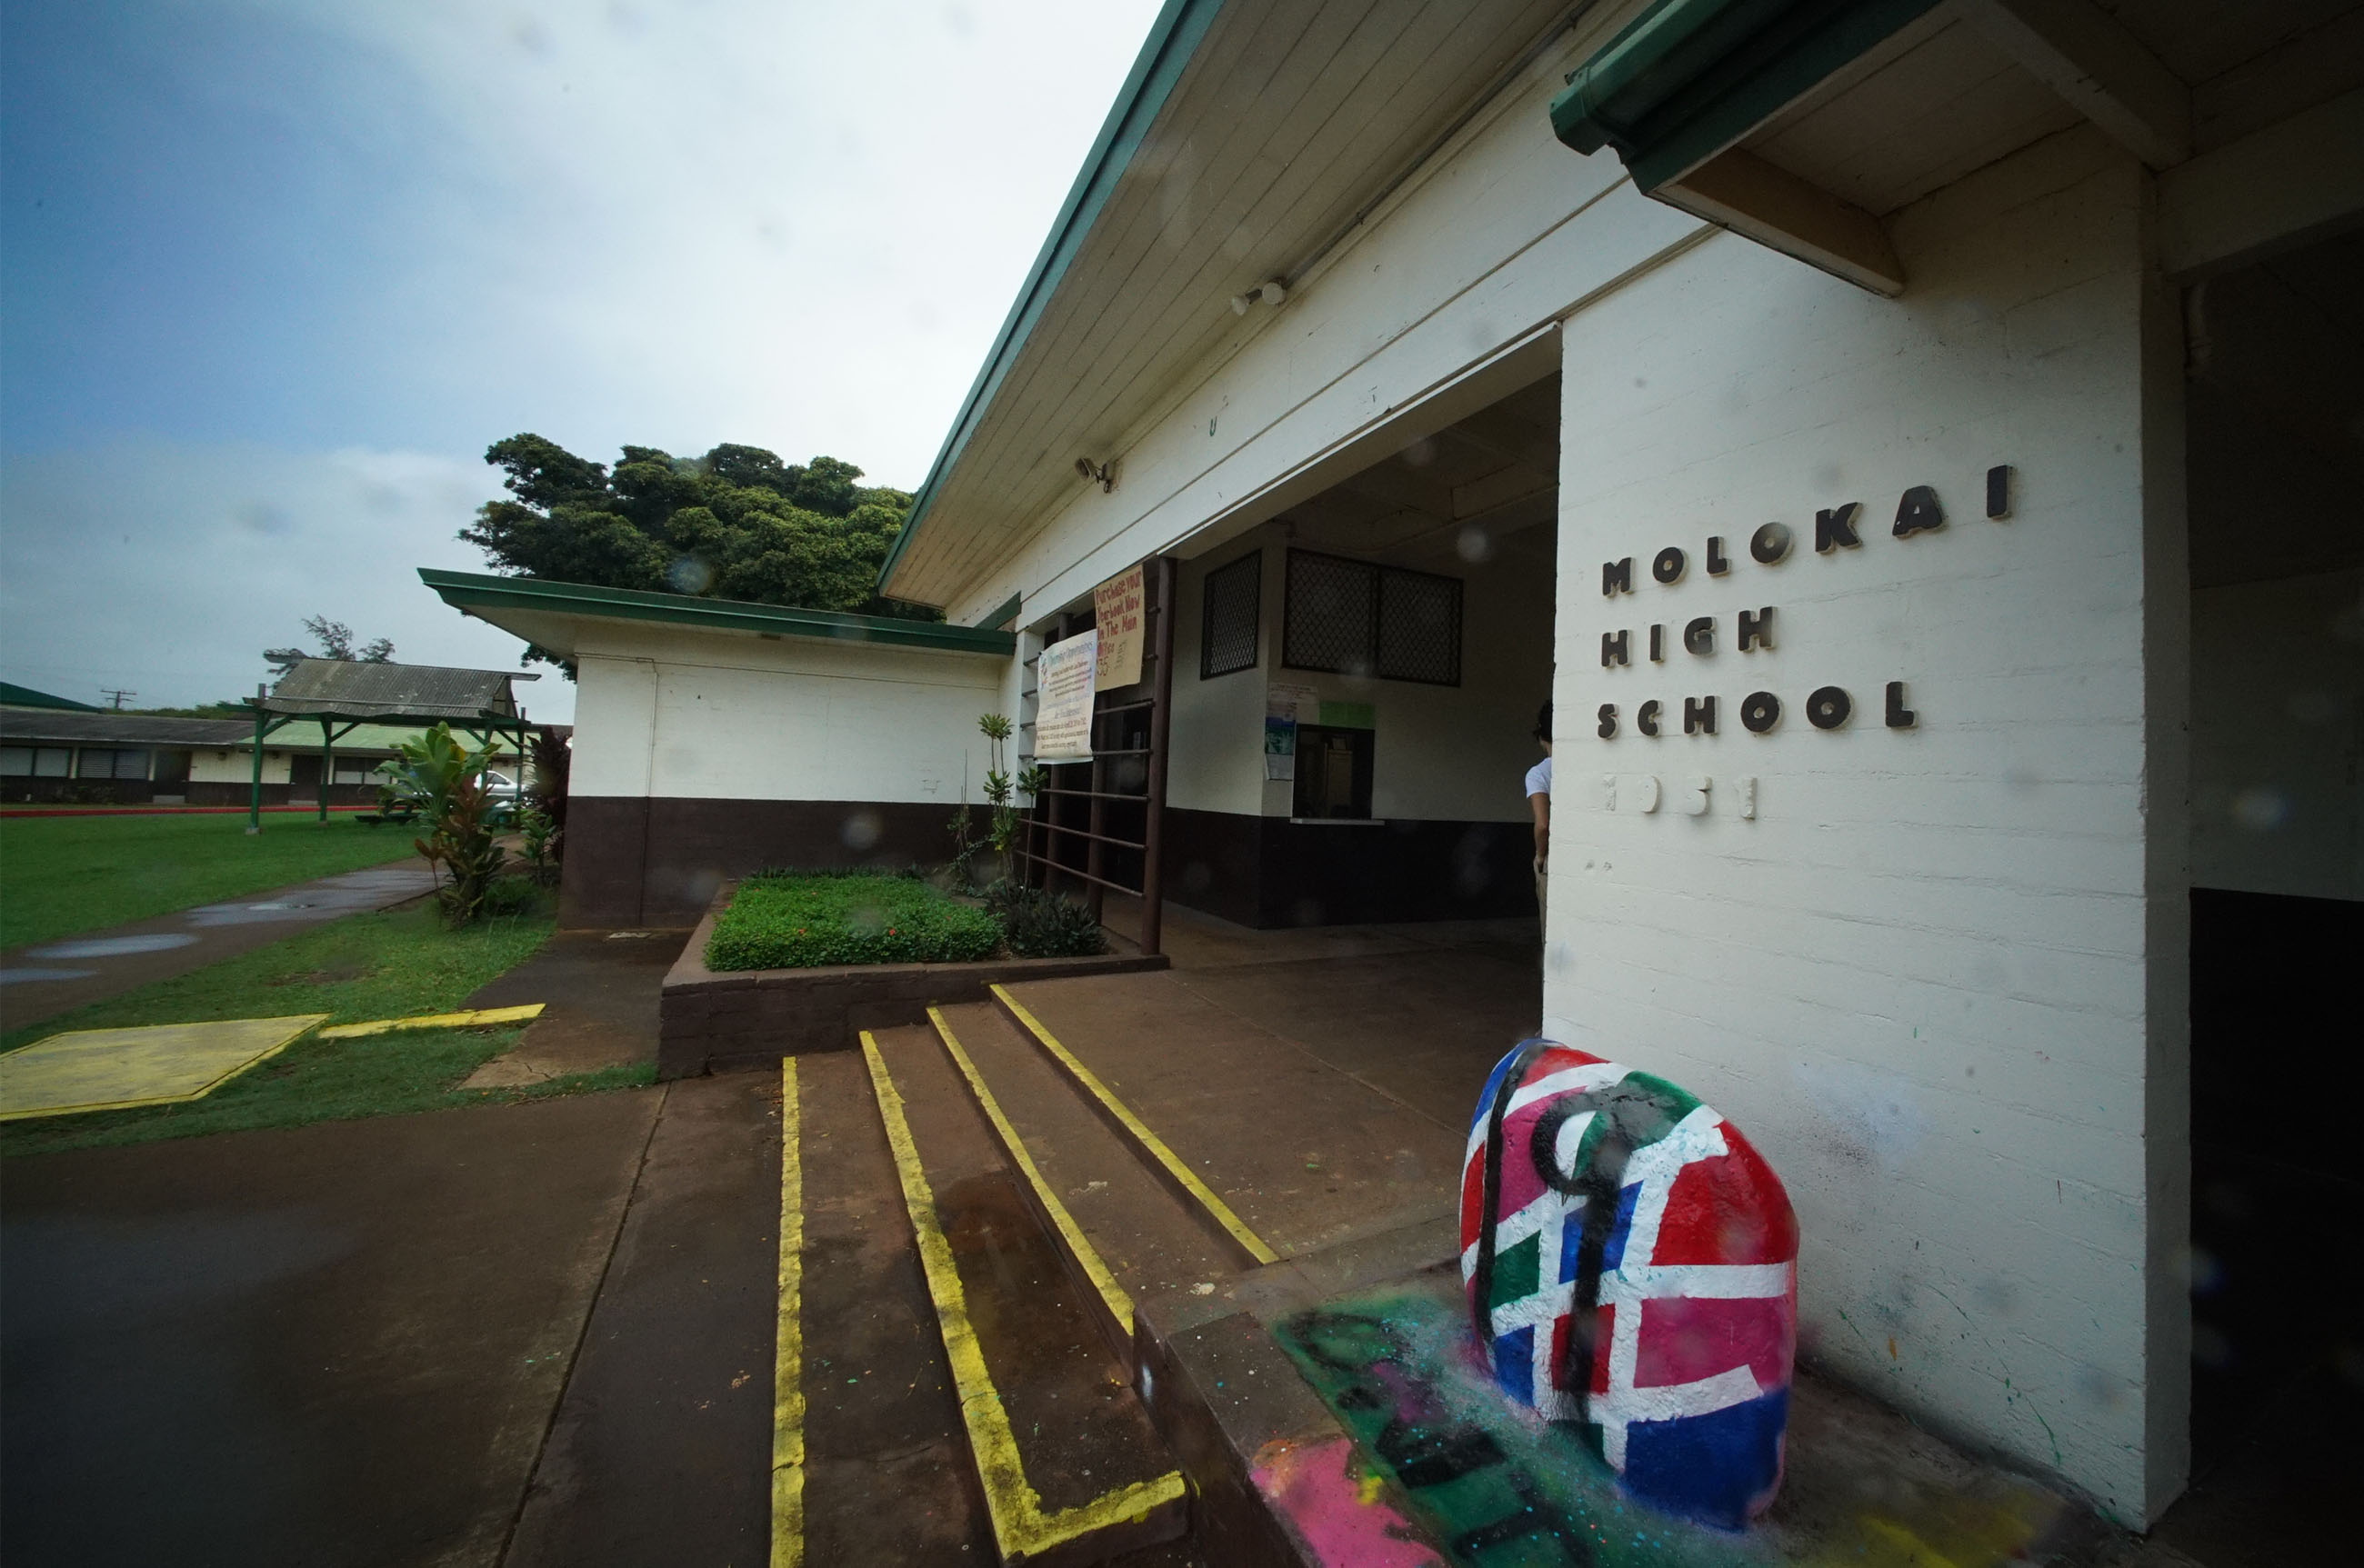 Molokai High School Administration Building.